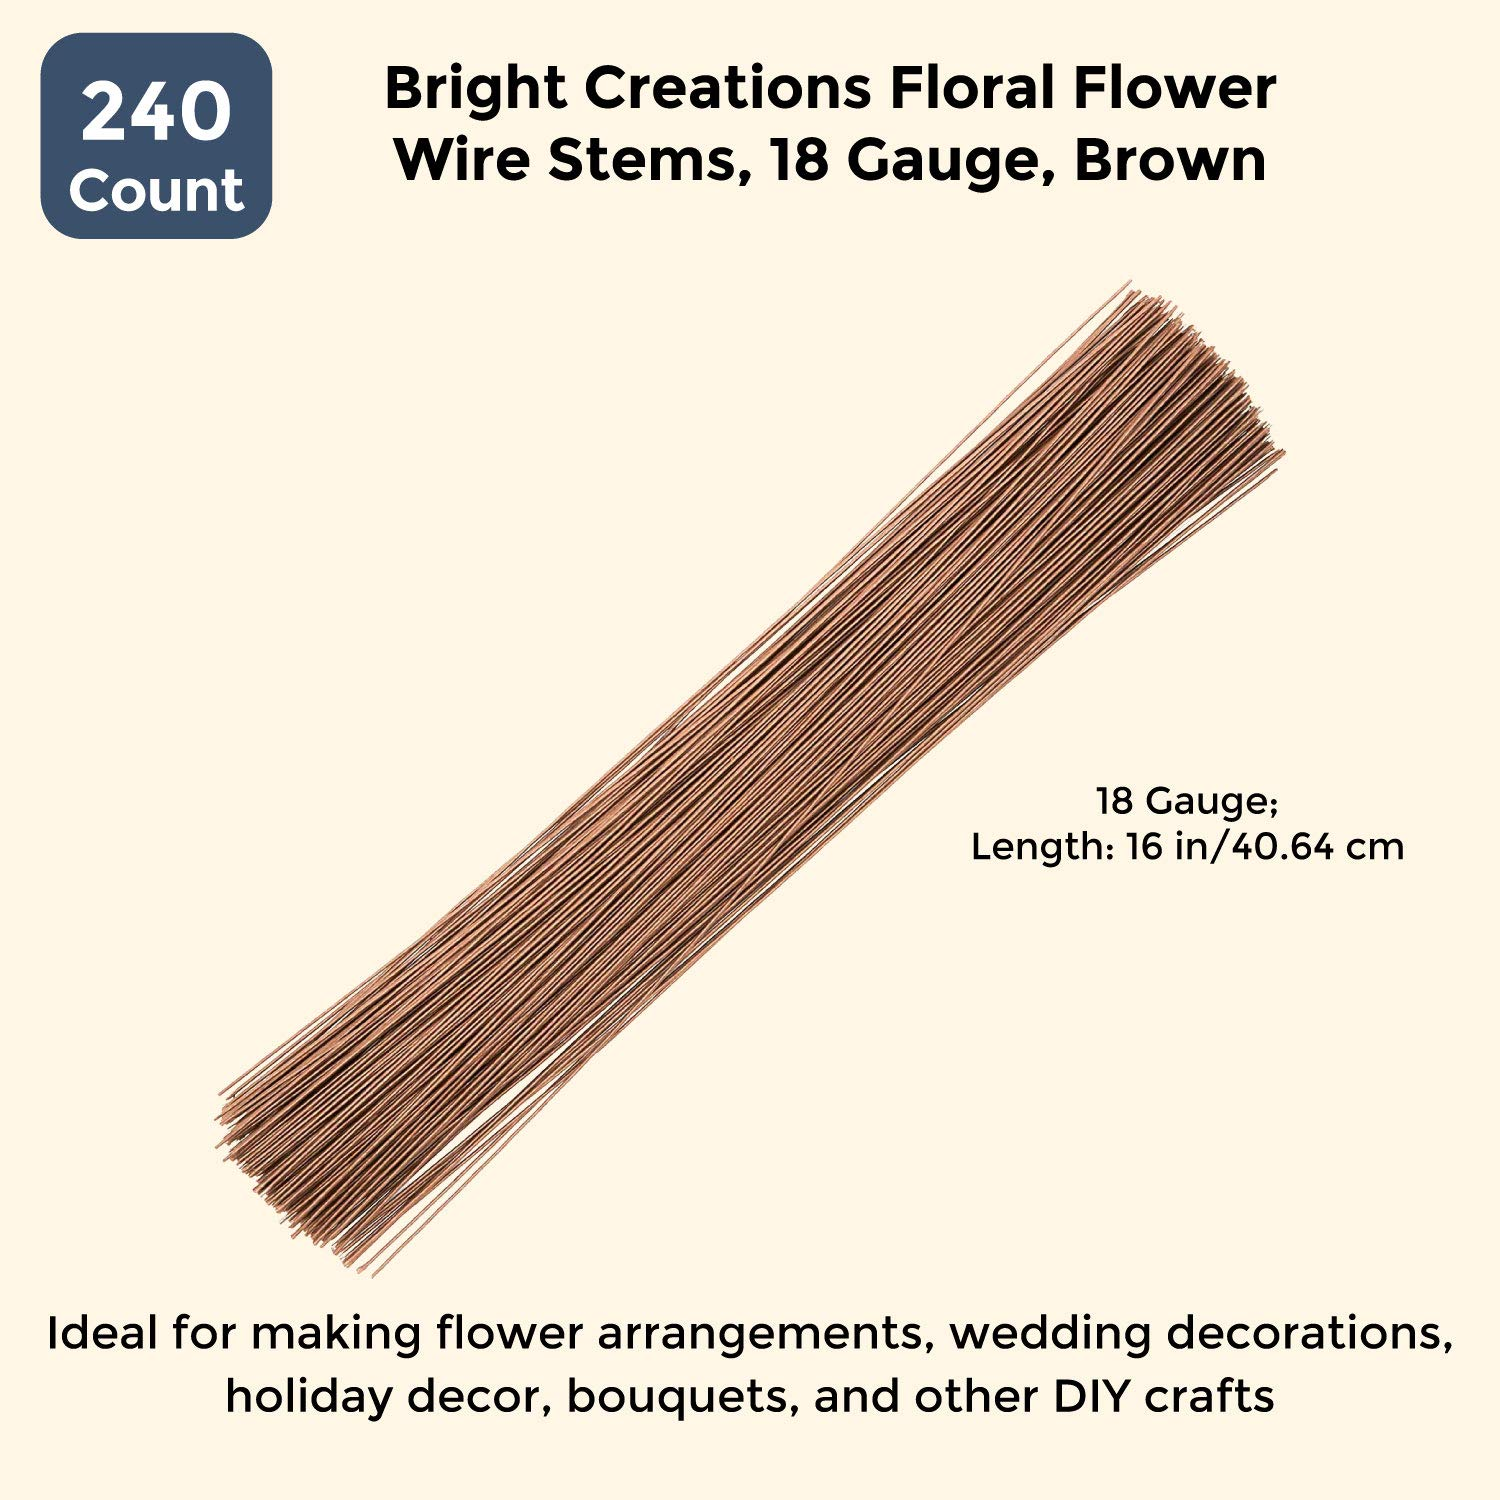 Brown Bright Creations Floral Flower Wire Stems 240 Count 18 Gauge 16 Inch